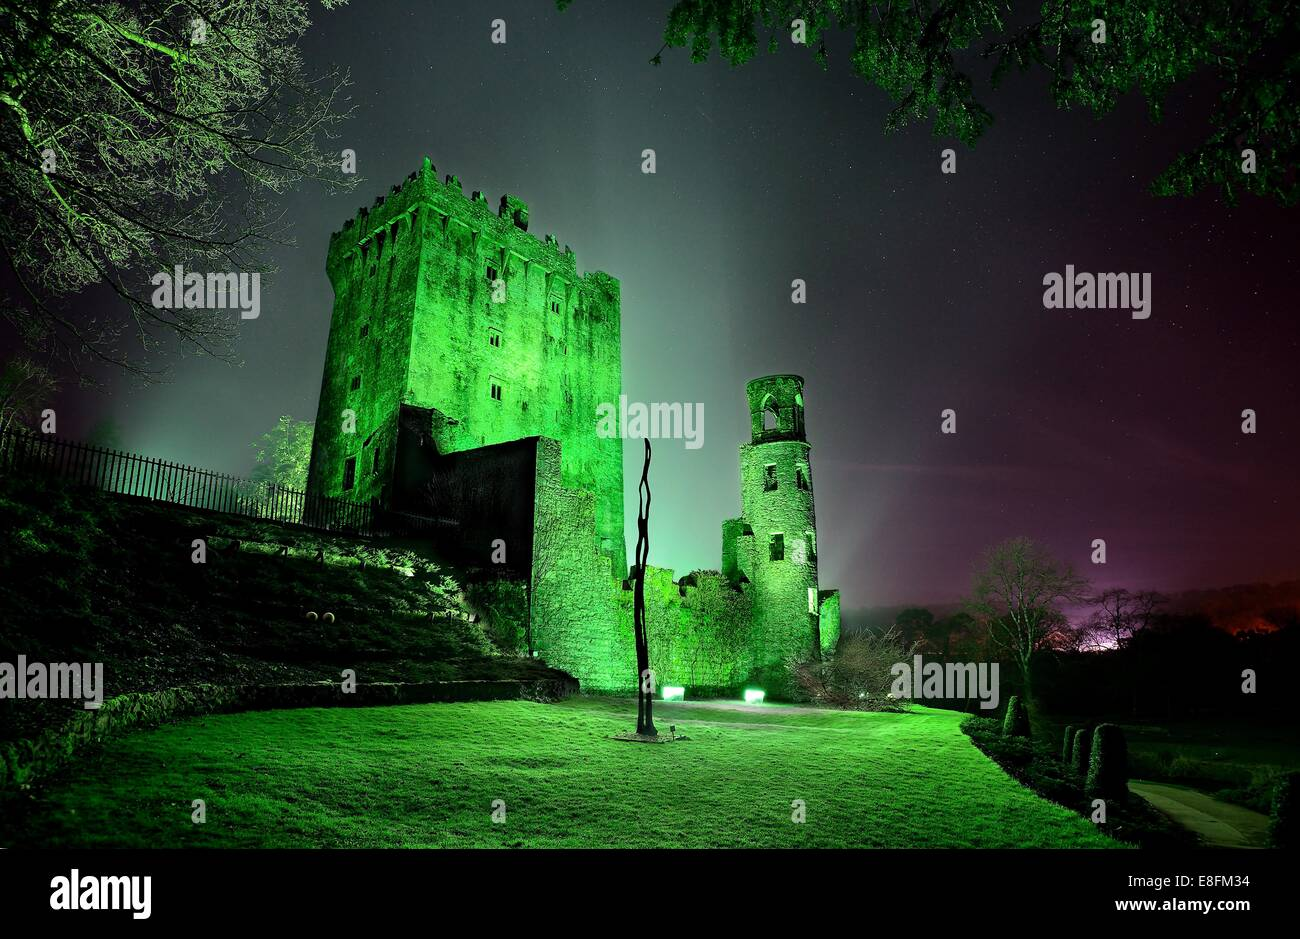 Irland, Munster, County Cork, Blarney, Blarney Castle am St. Patricks day Stockbild